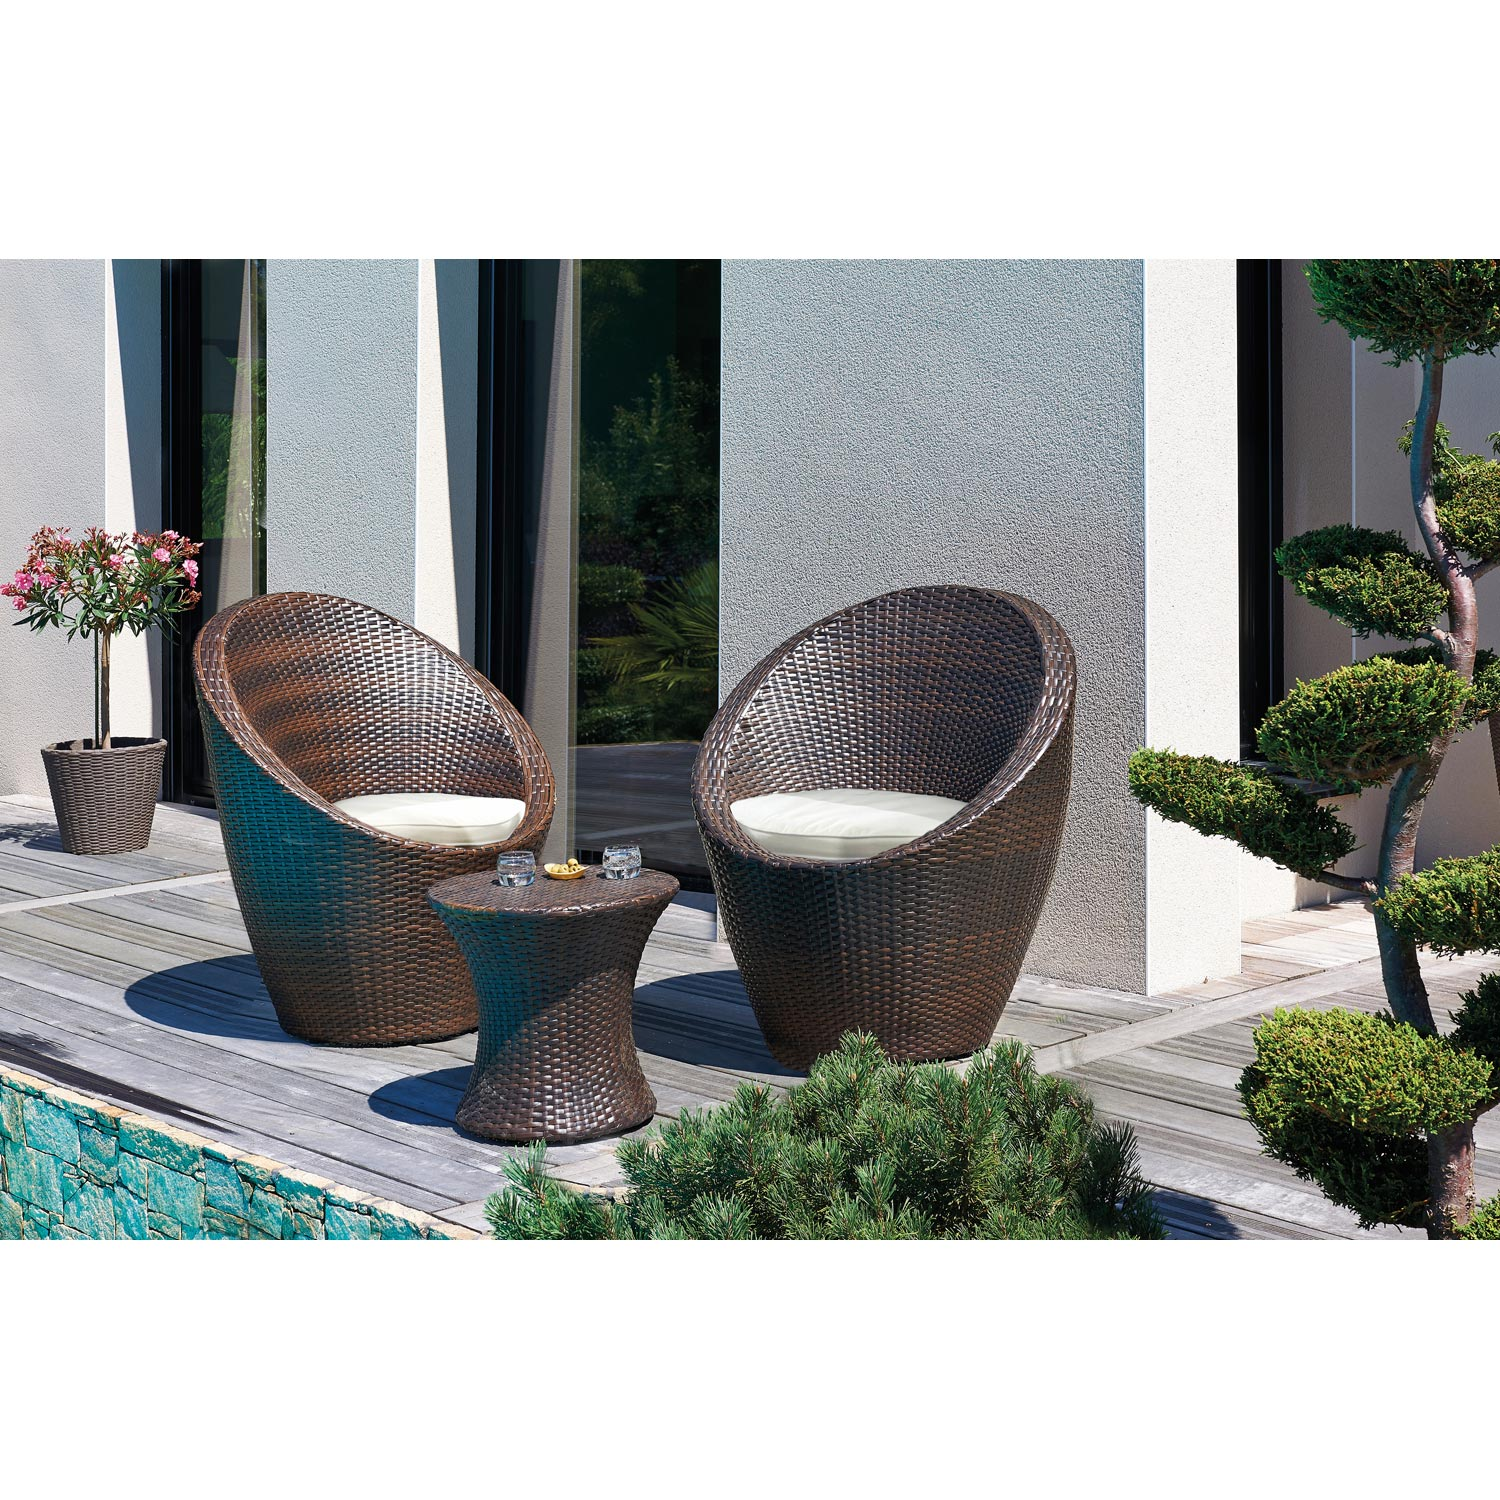 Salon bas de jardin totem r sine tress e chocolat 1 table for Balancines para jardin leroy merlin